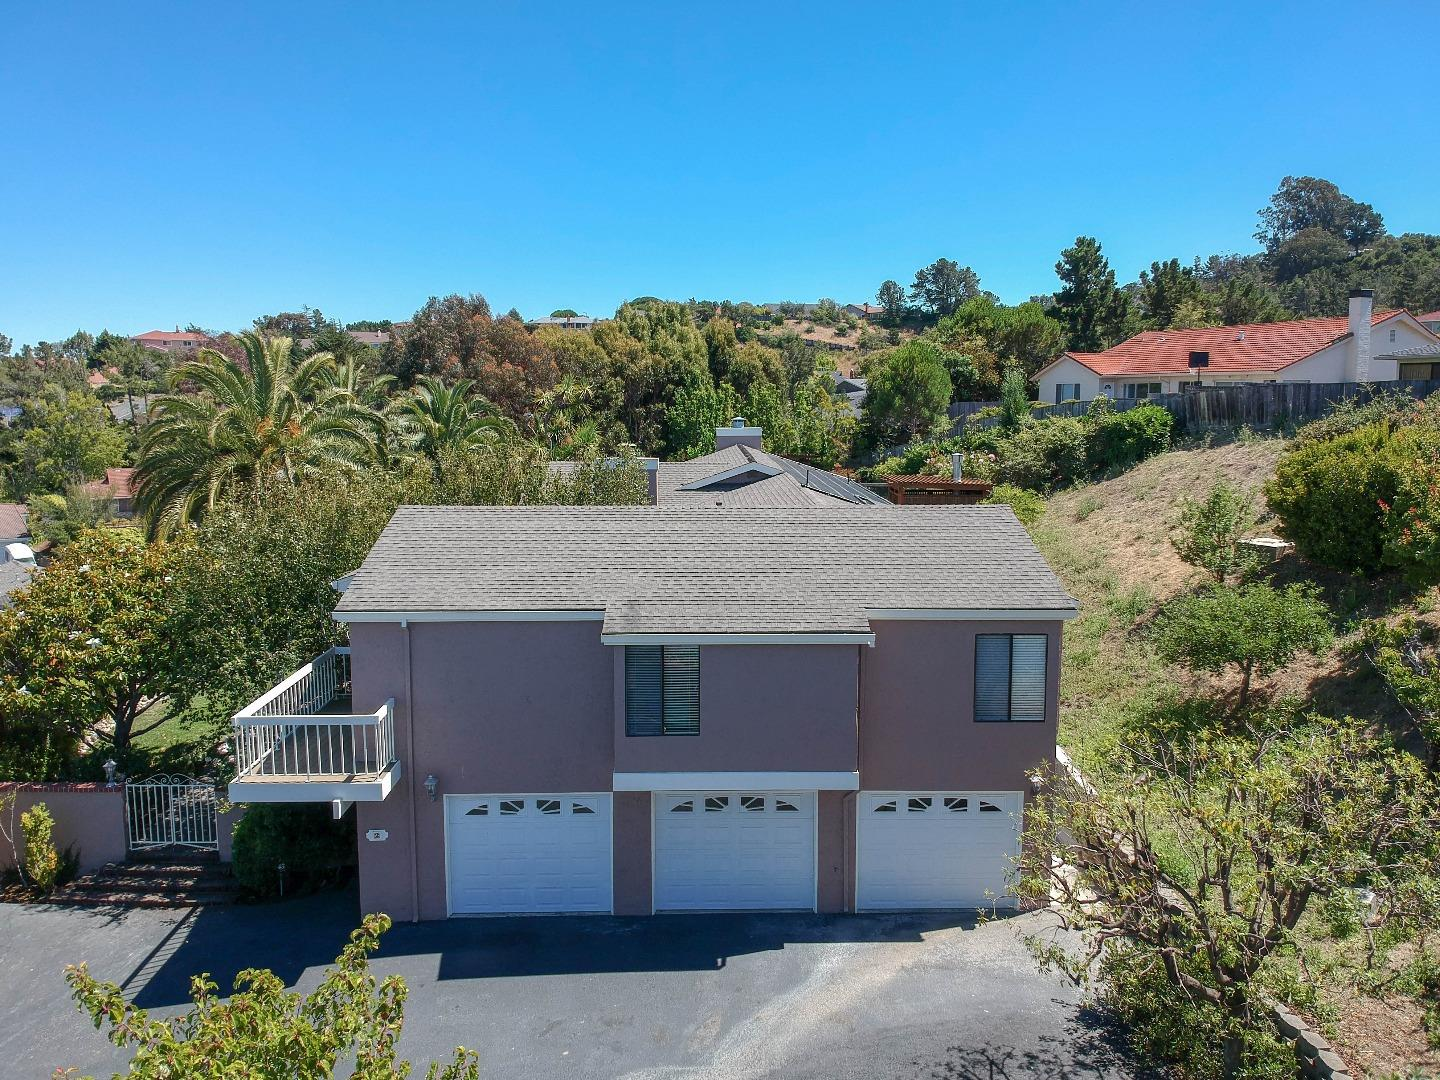 2 Lombardi Lane Millbrae, CA 94030 - MLS #: ML81718287